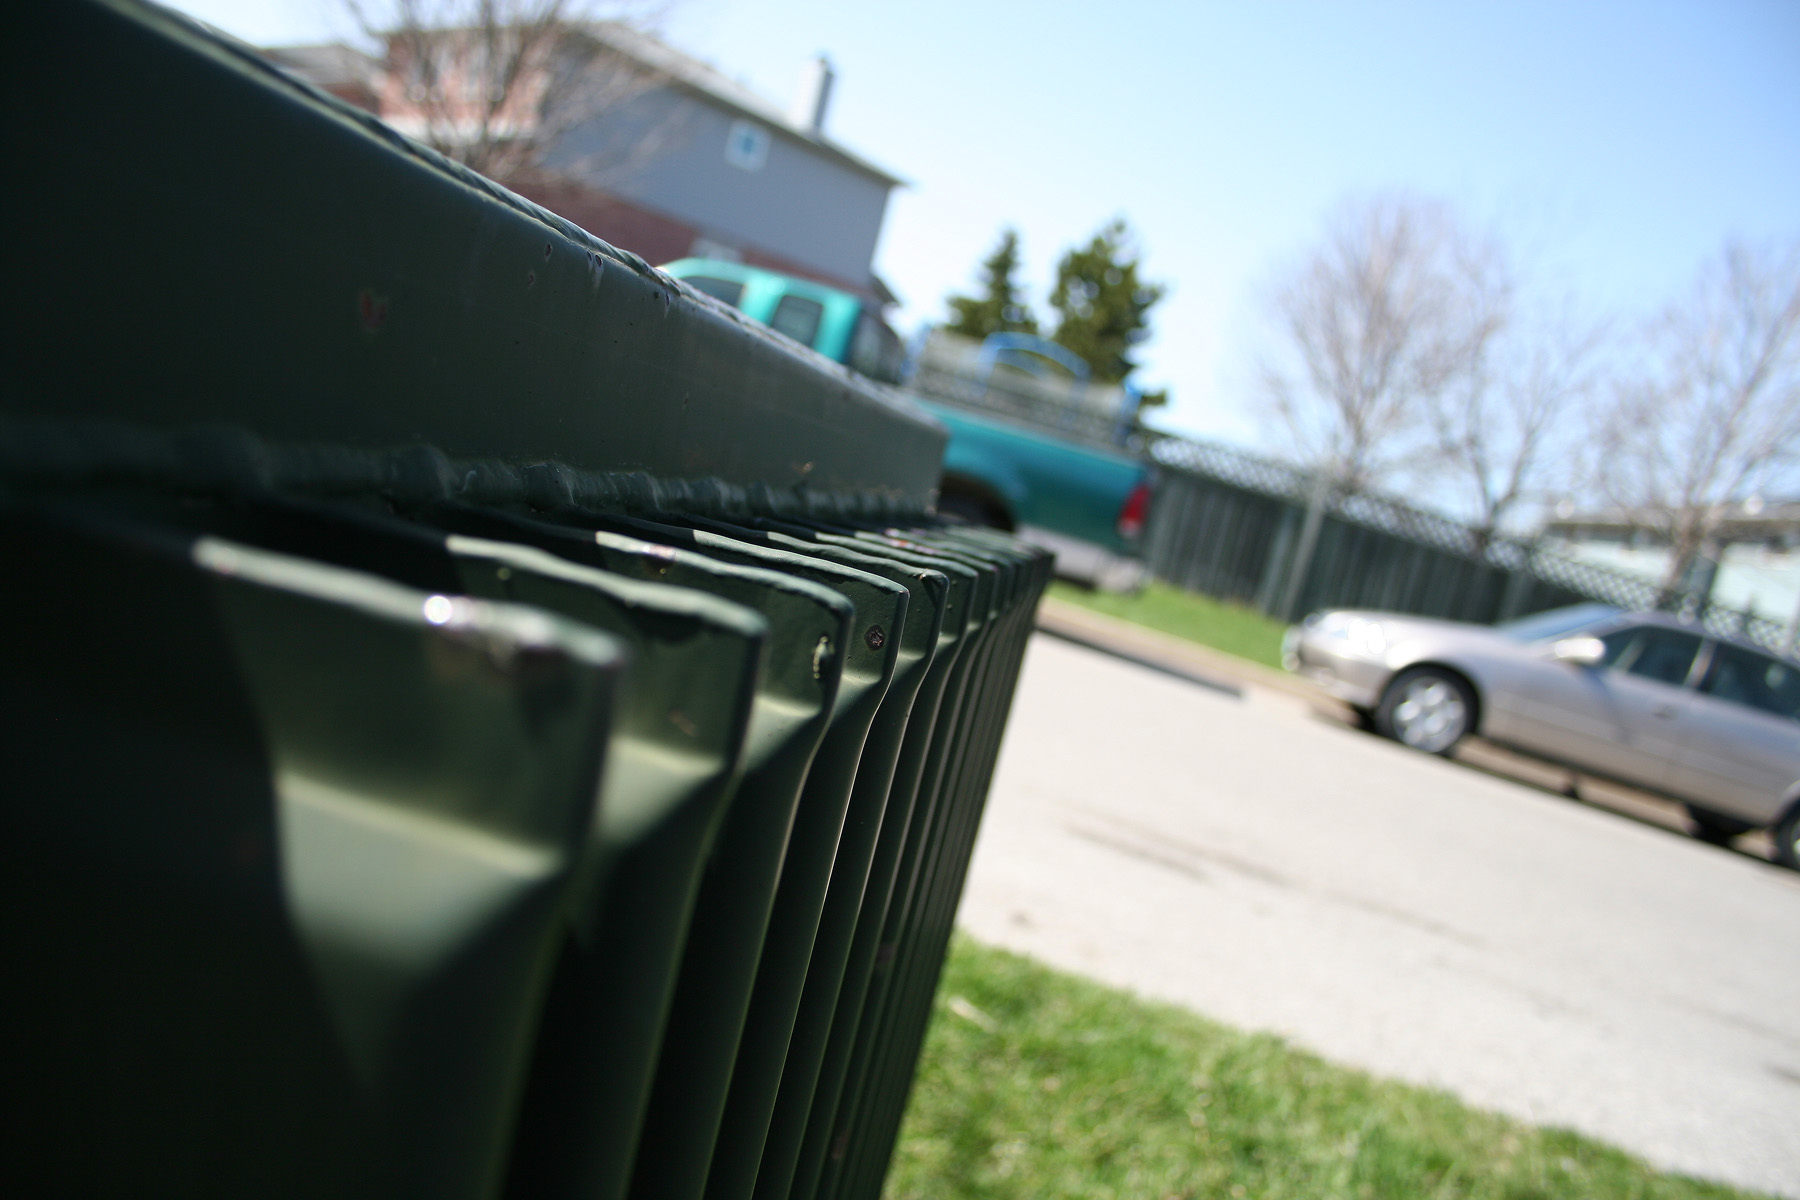 Metallic rails, Angle, Box, Car, Grass, HQ Photo